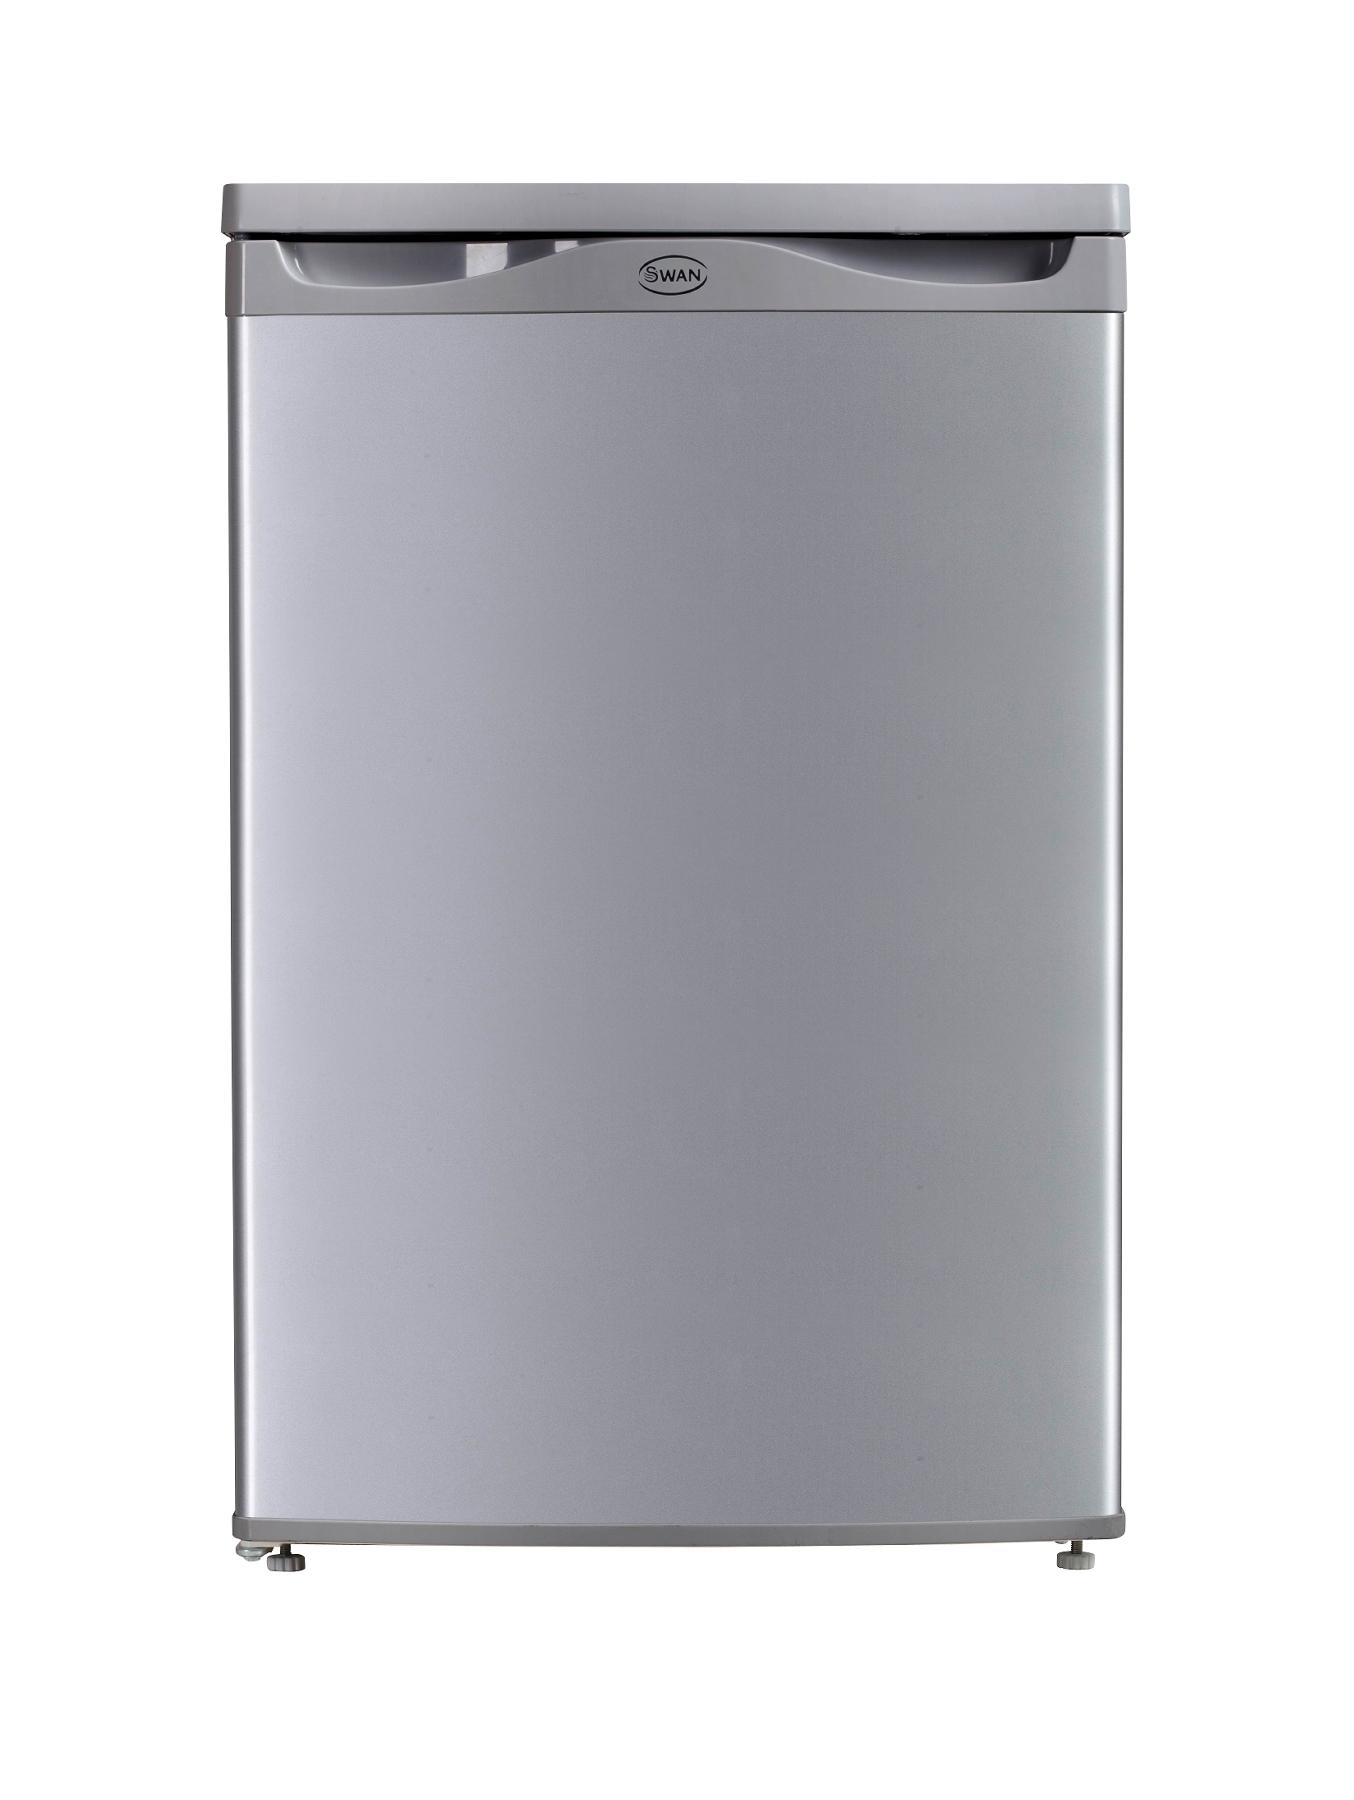 SR5141S 55cm Under-counter Larder Fridge - Silver at Littlewoods